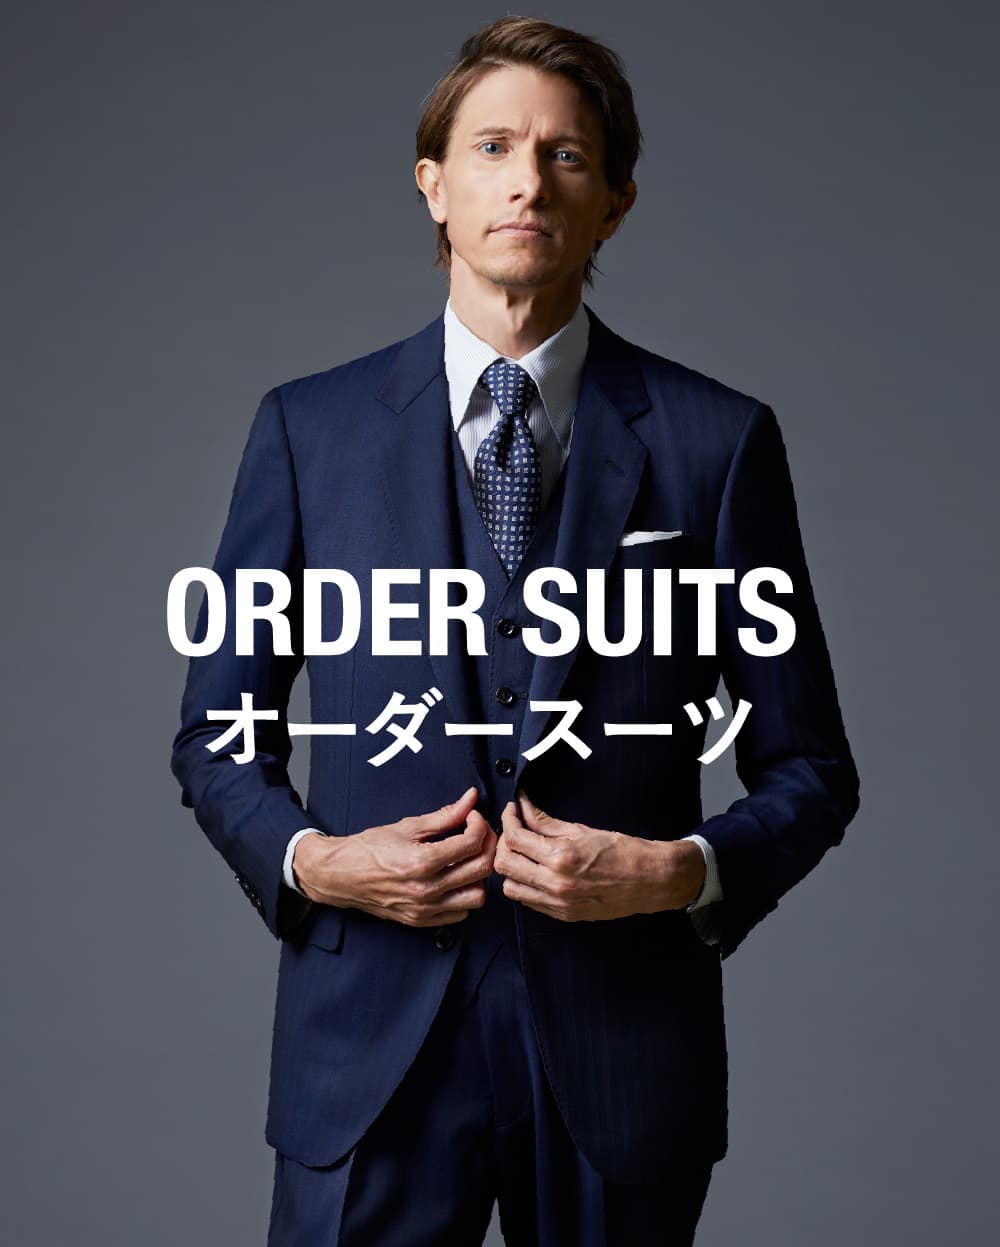 ORDER SUITS